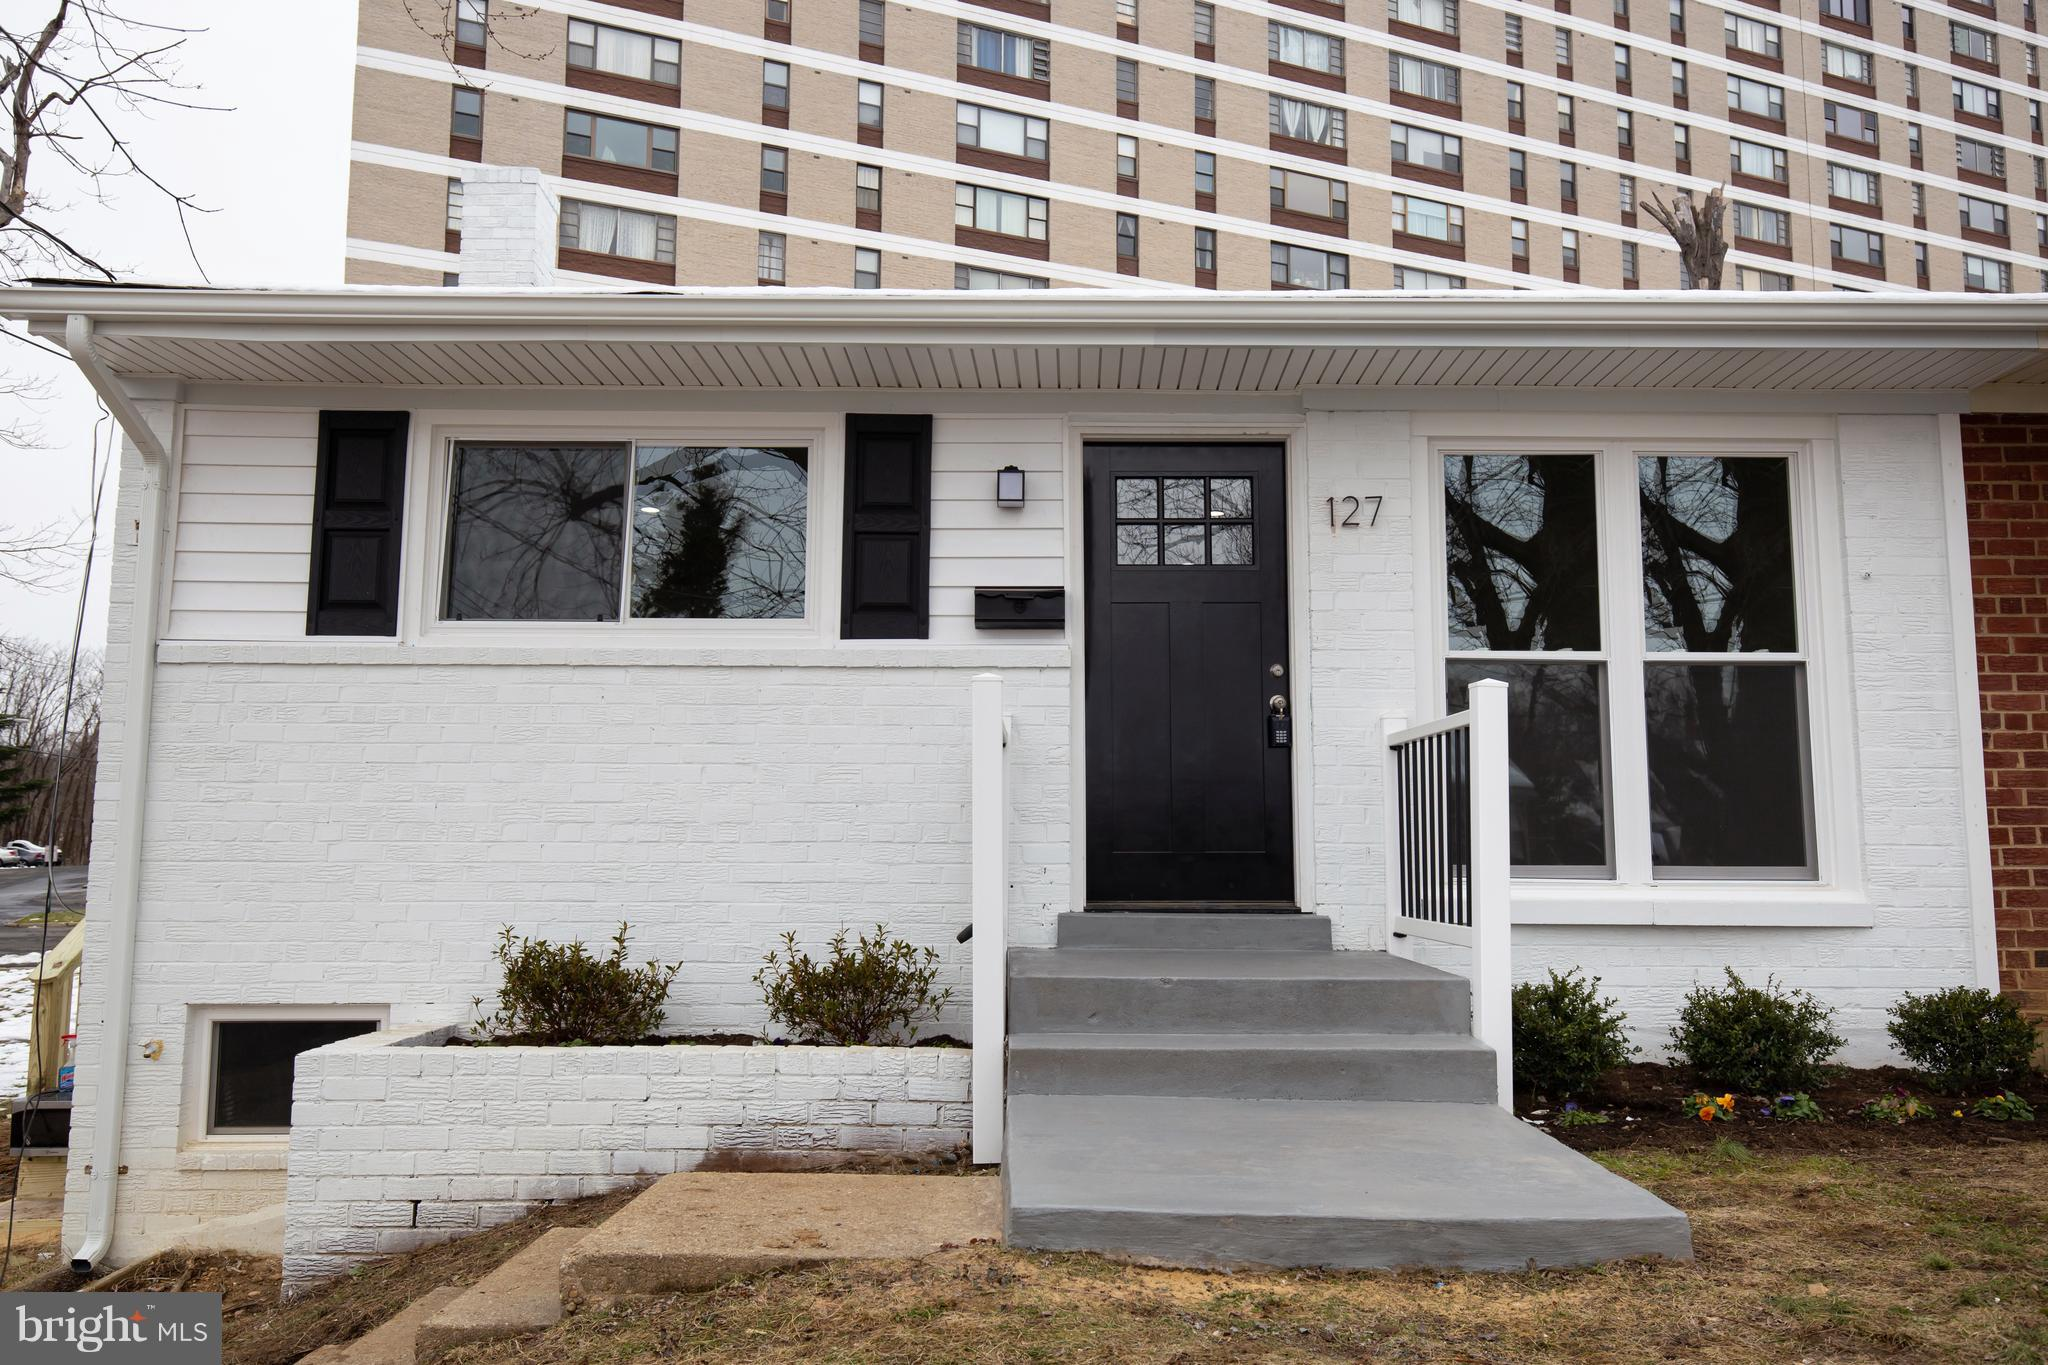 Fabulous 3 bed plus den 2 bath duplex nestled in the heart of the city.  Recently renovated including gleaming wood floors, recessed lighting, sparkling quartz counters and SS appliances. New open concept kitchen and living room layout is the perfect entertaining space.  All new modern baths with ceramic tile and modern fixtures.   Basement features 4th bed/den and full bath.  Amazing opportunity to own/invest near Amazon~s new HQ2! Walking distance to Aldi, Harris Teeter, several restaurants, Duke St Dog Park, Holmes Run Trail, Charles E. Beatley Library. Close to I-95/395, 3 miles to King Street Metro and Old Town. Walk to bus stop!